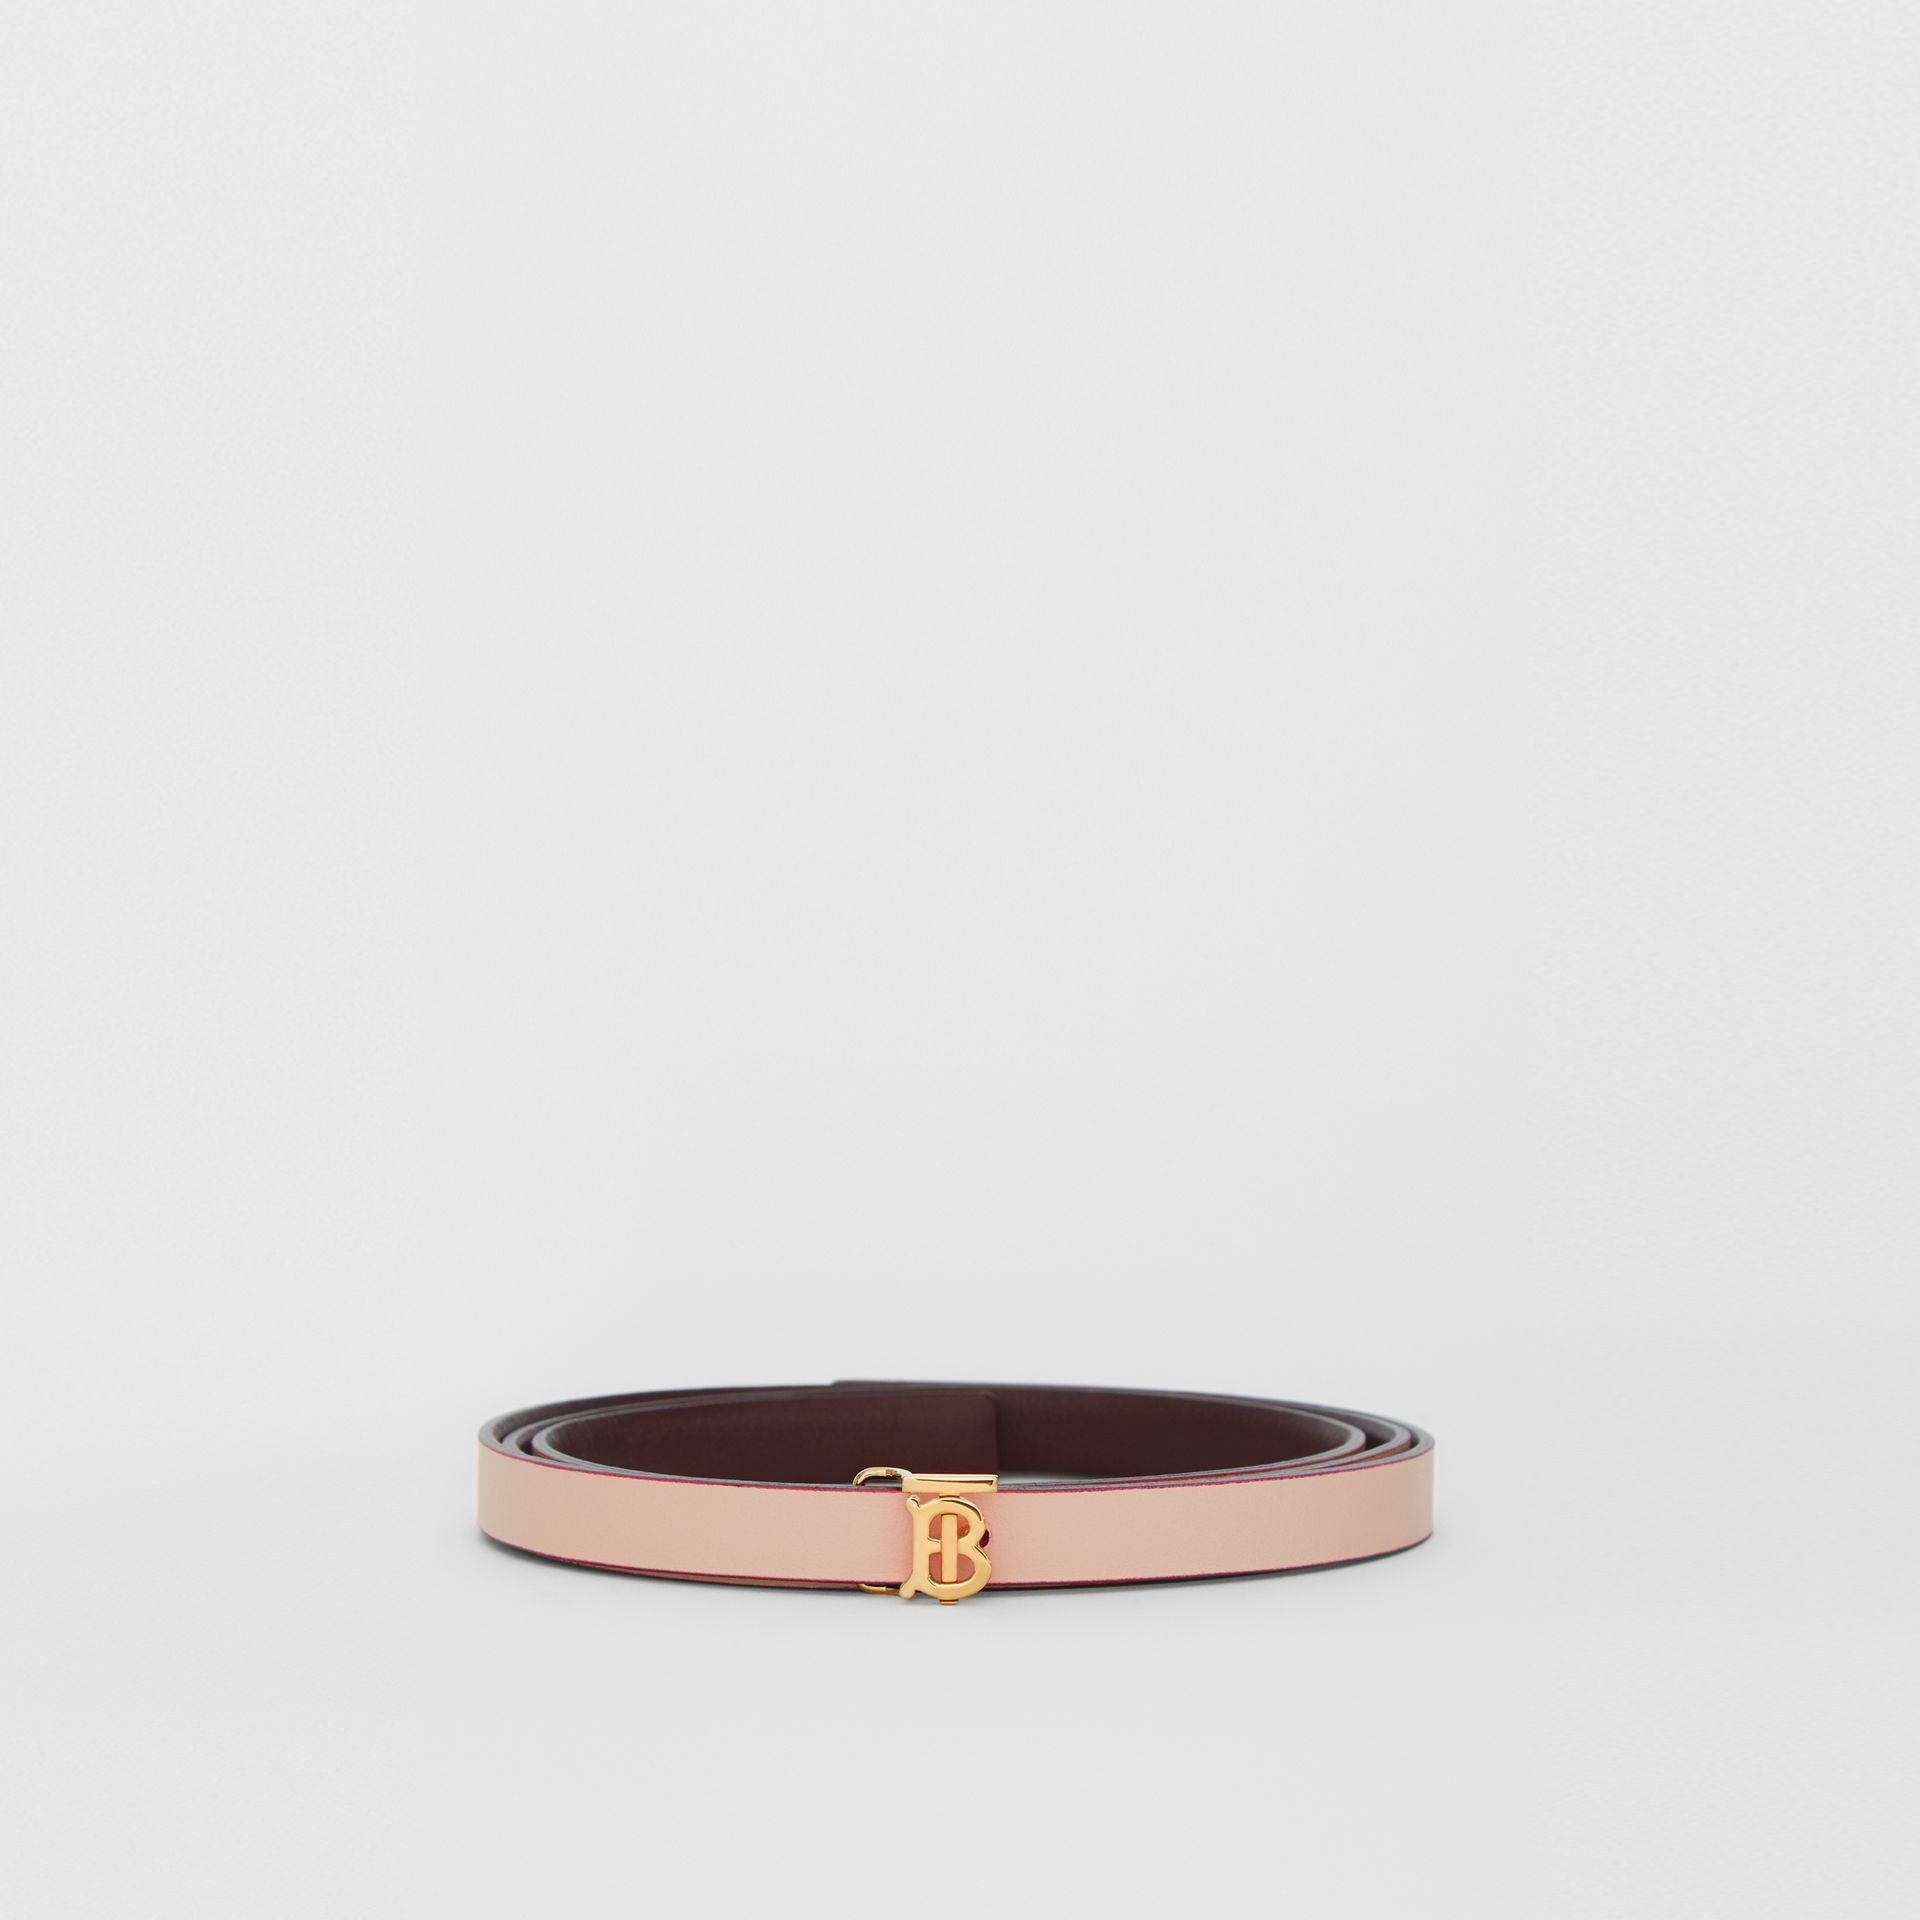 Reversible Monogram Motif Leather Wrap Belt in Oxblood/rose Beige - Women | Burberry United States - gallery image 6